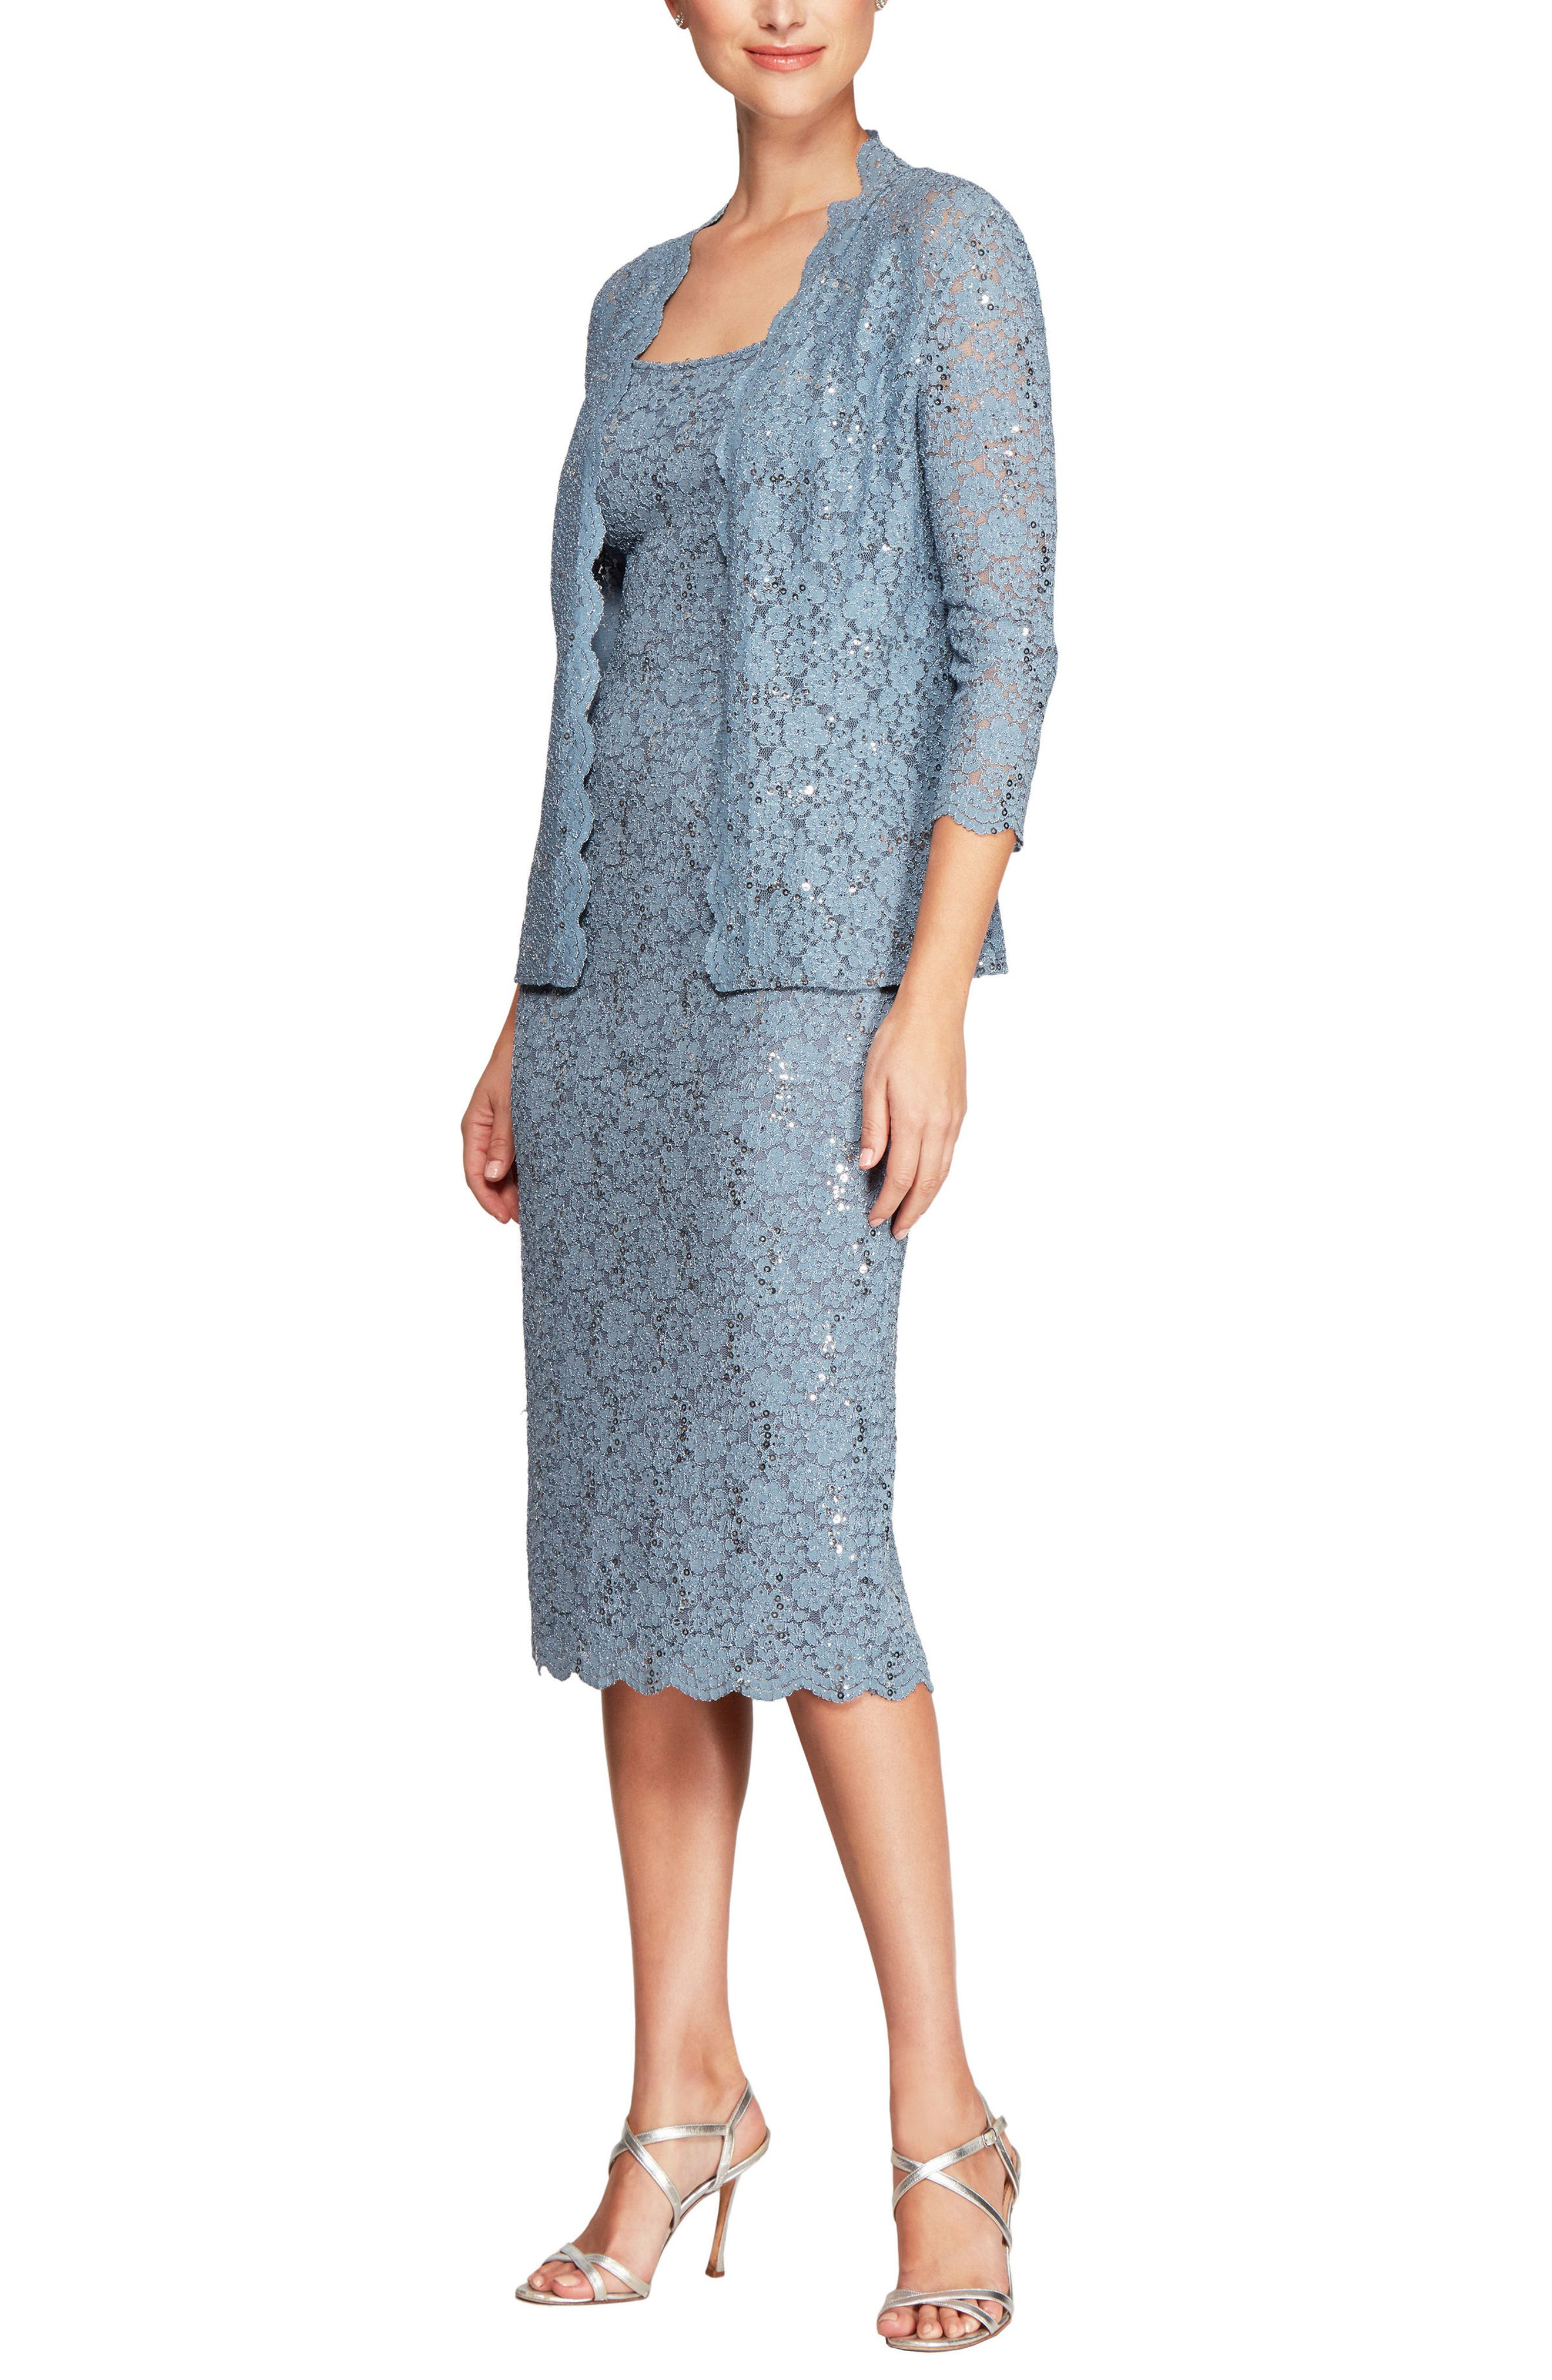 Sequined Lace Sheath Dress with Jacket,                             Main thumbnail 1, color,                             Steel Blue